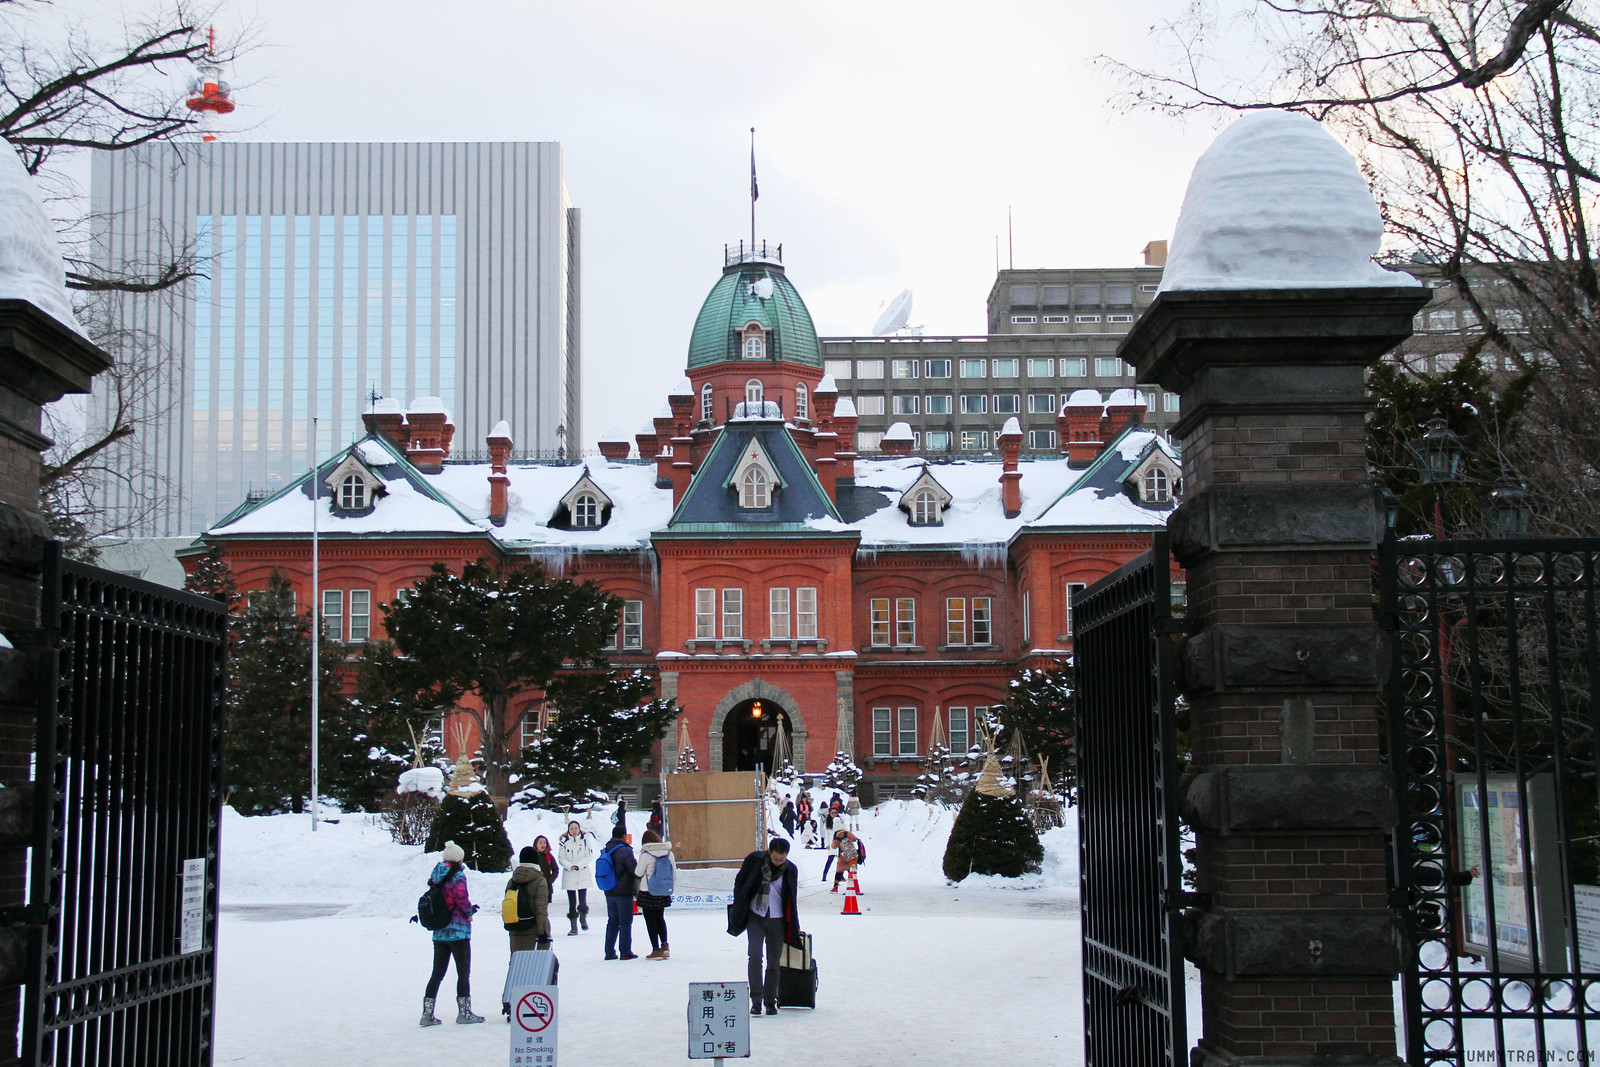 32537404810 50310883cd h - Sapporo Snow And Smile: 8 Unforgettable Winter Experiences in Sapporo City